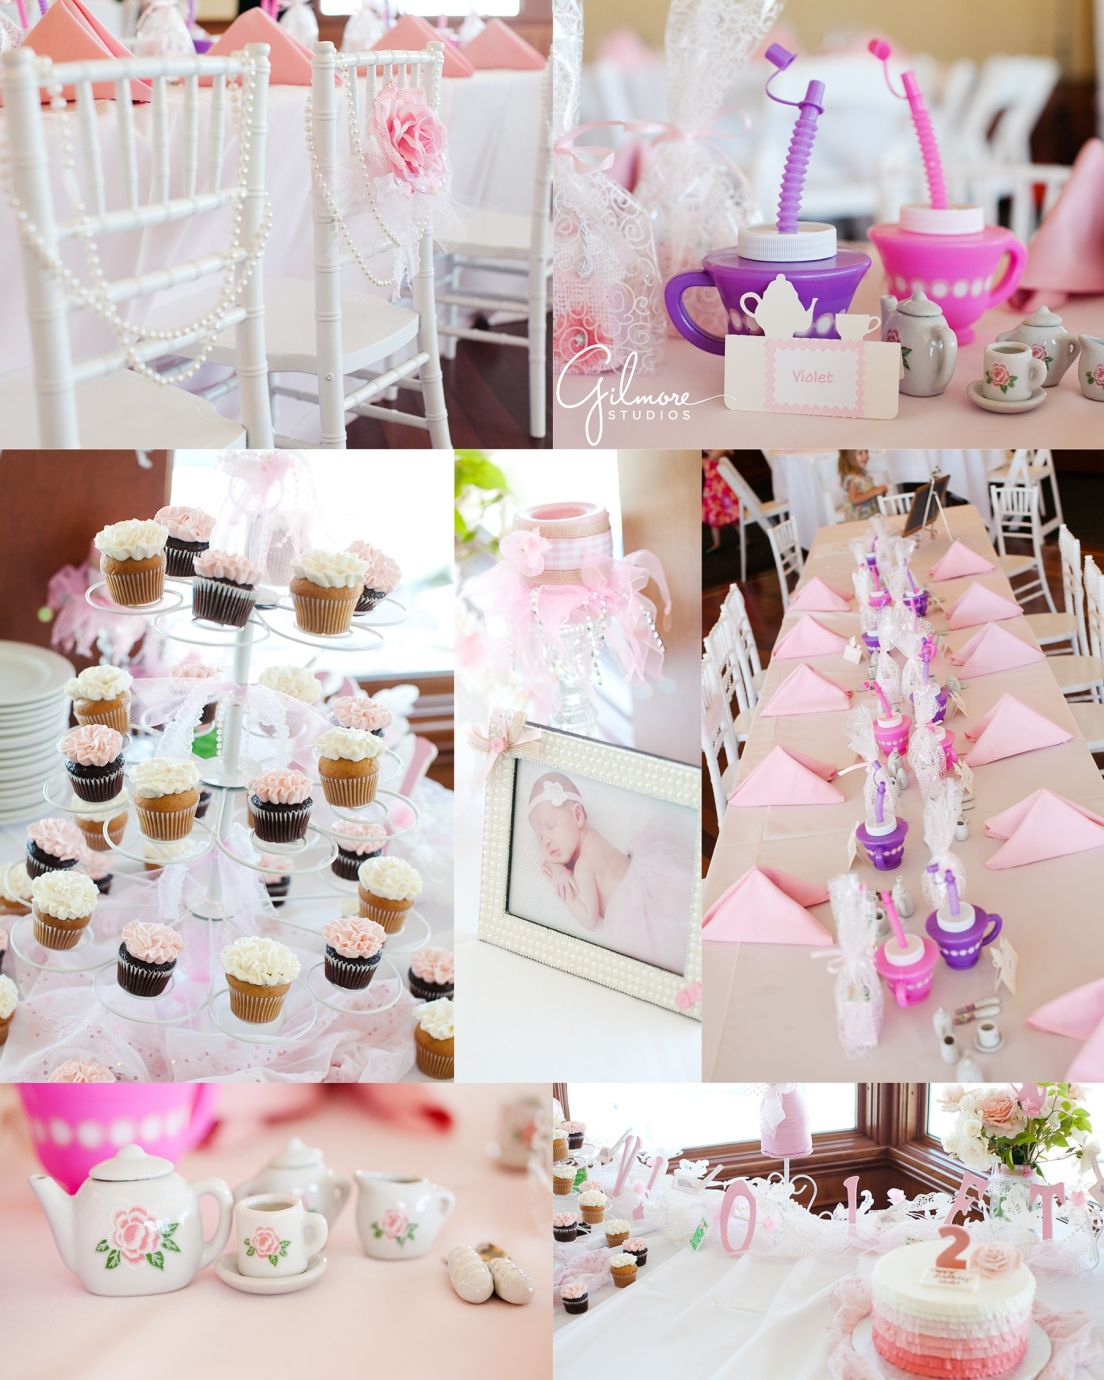 Tea party idea | Juliette\'s bday ideas | Pinterest | Tea parties ...